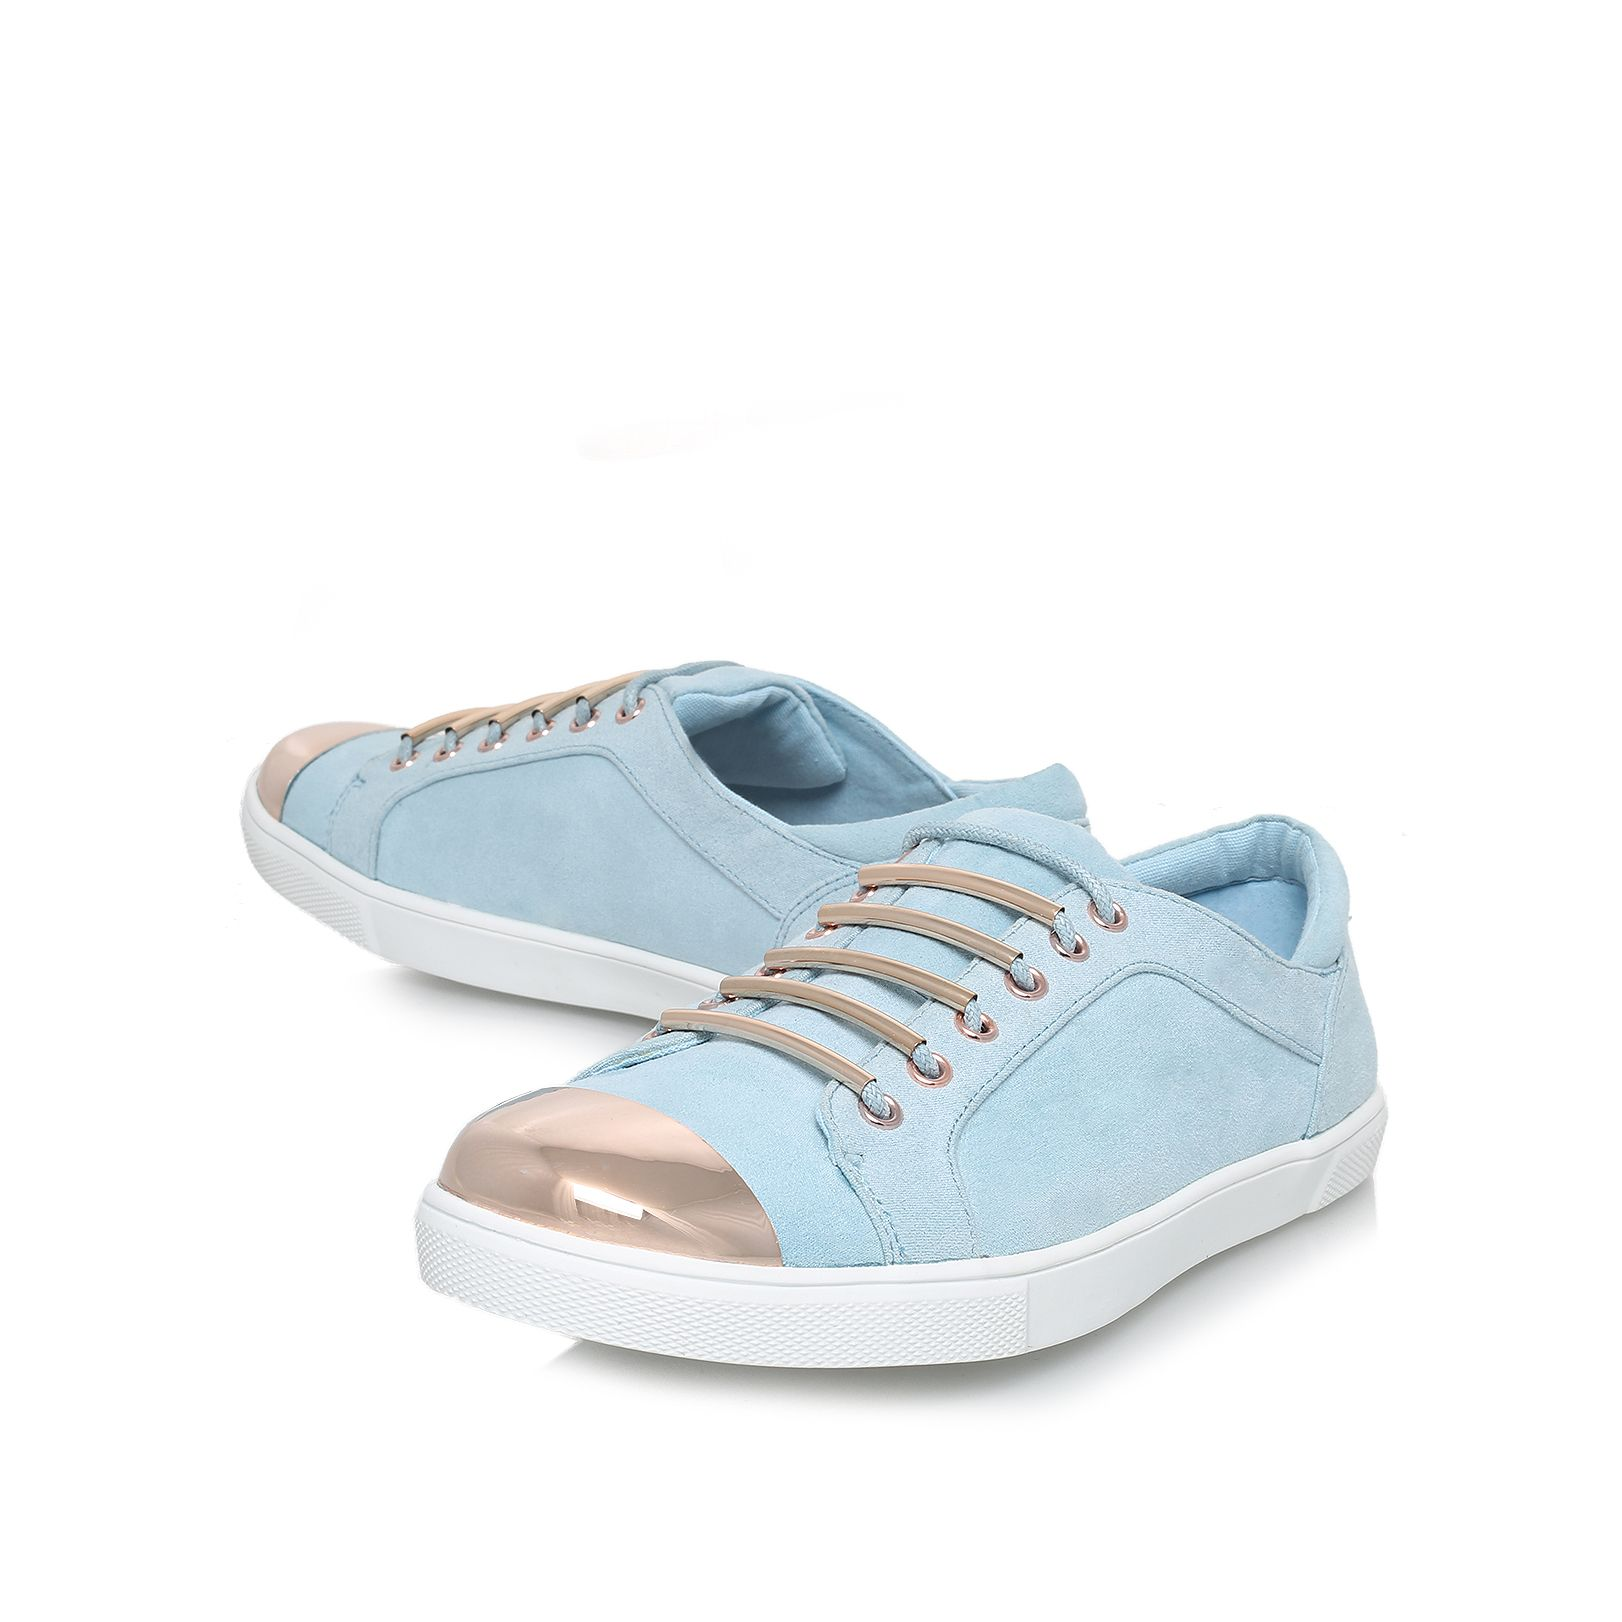 Lollipop flat low top trainers